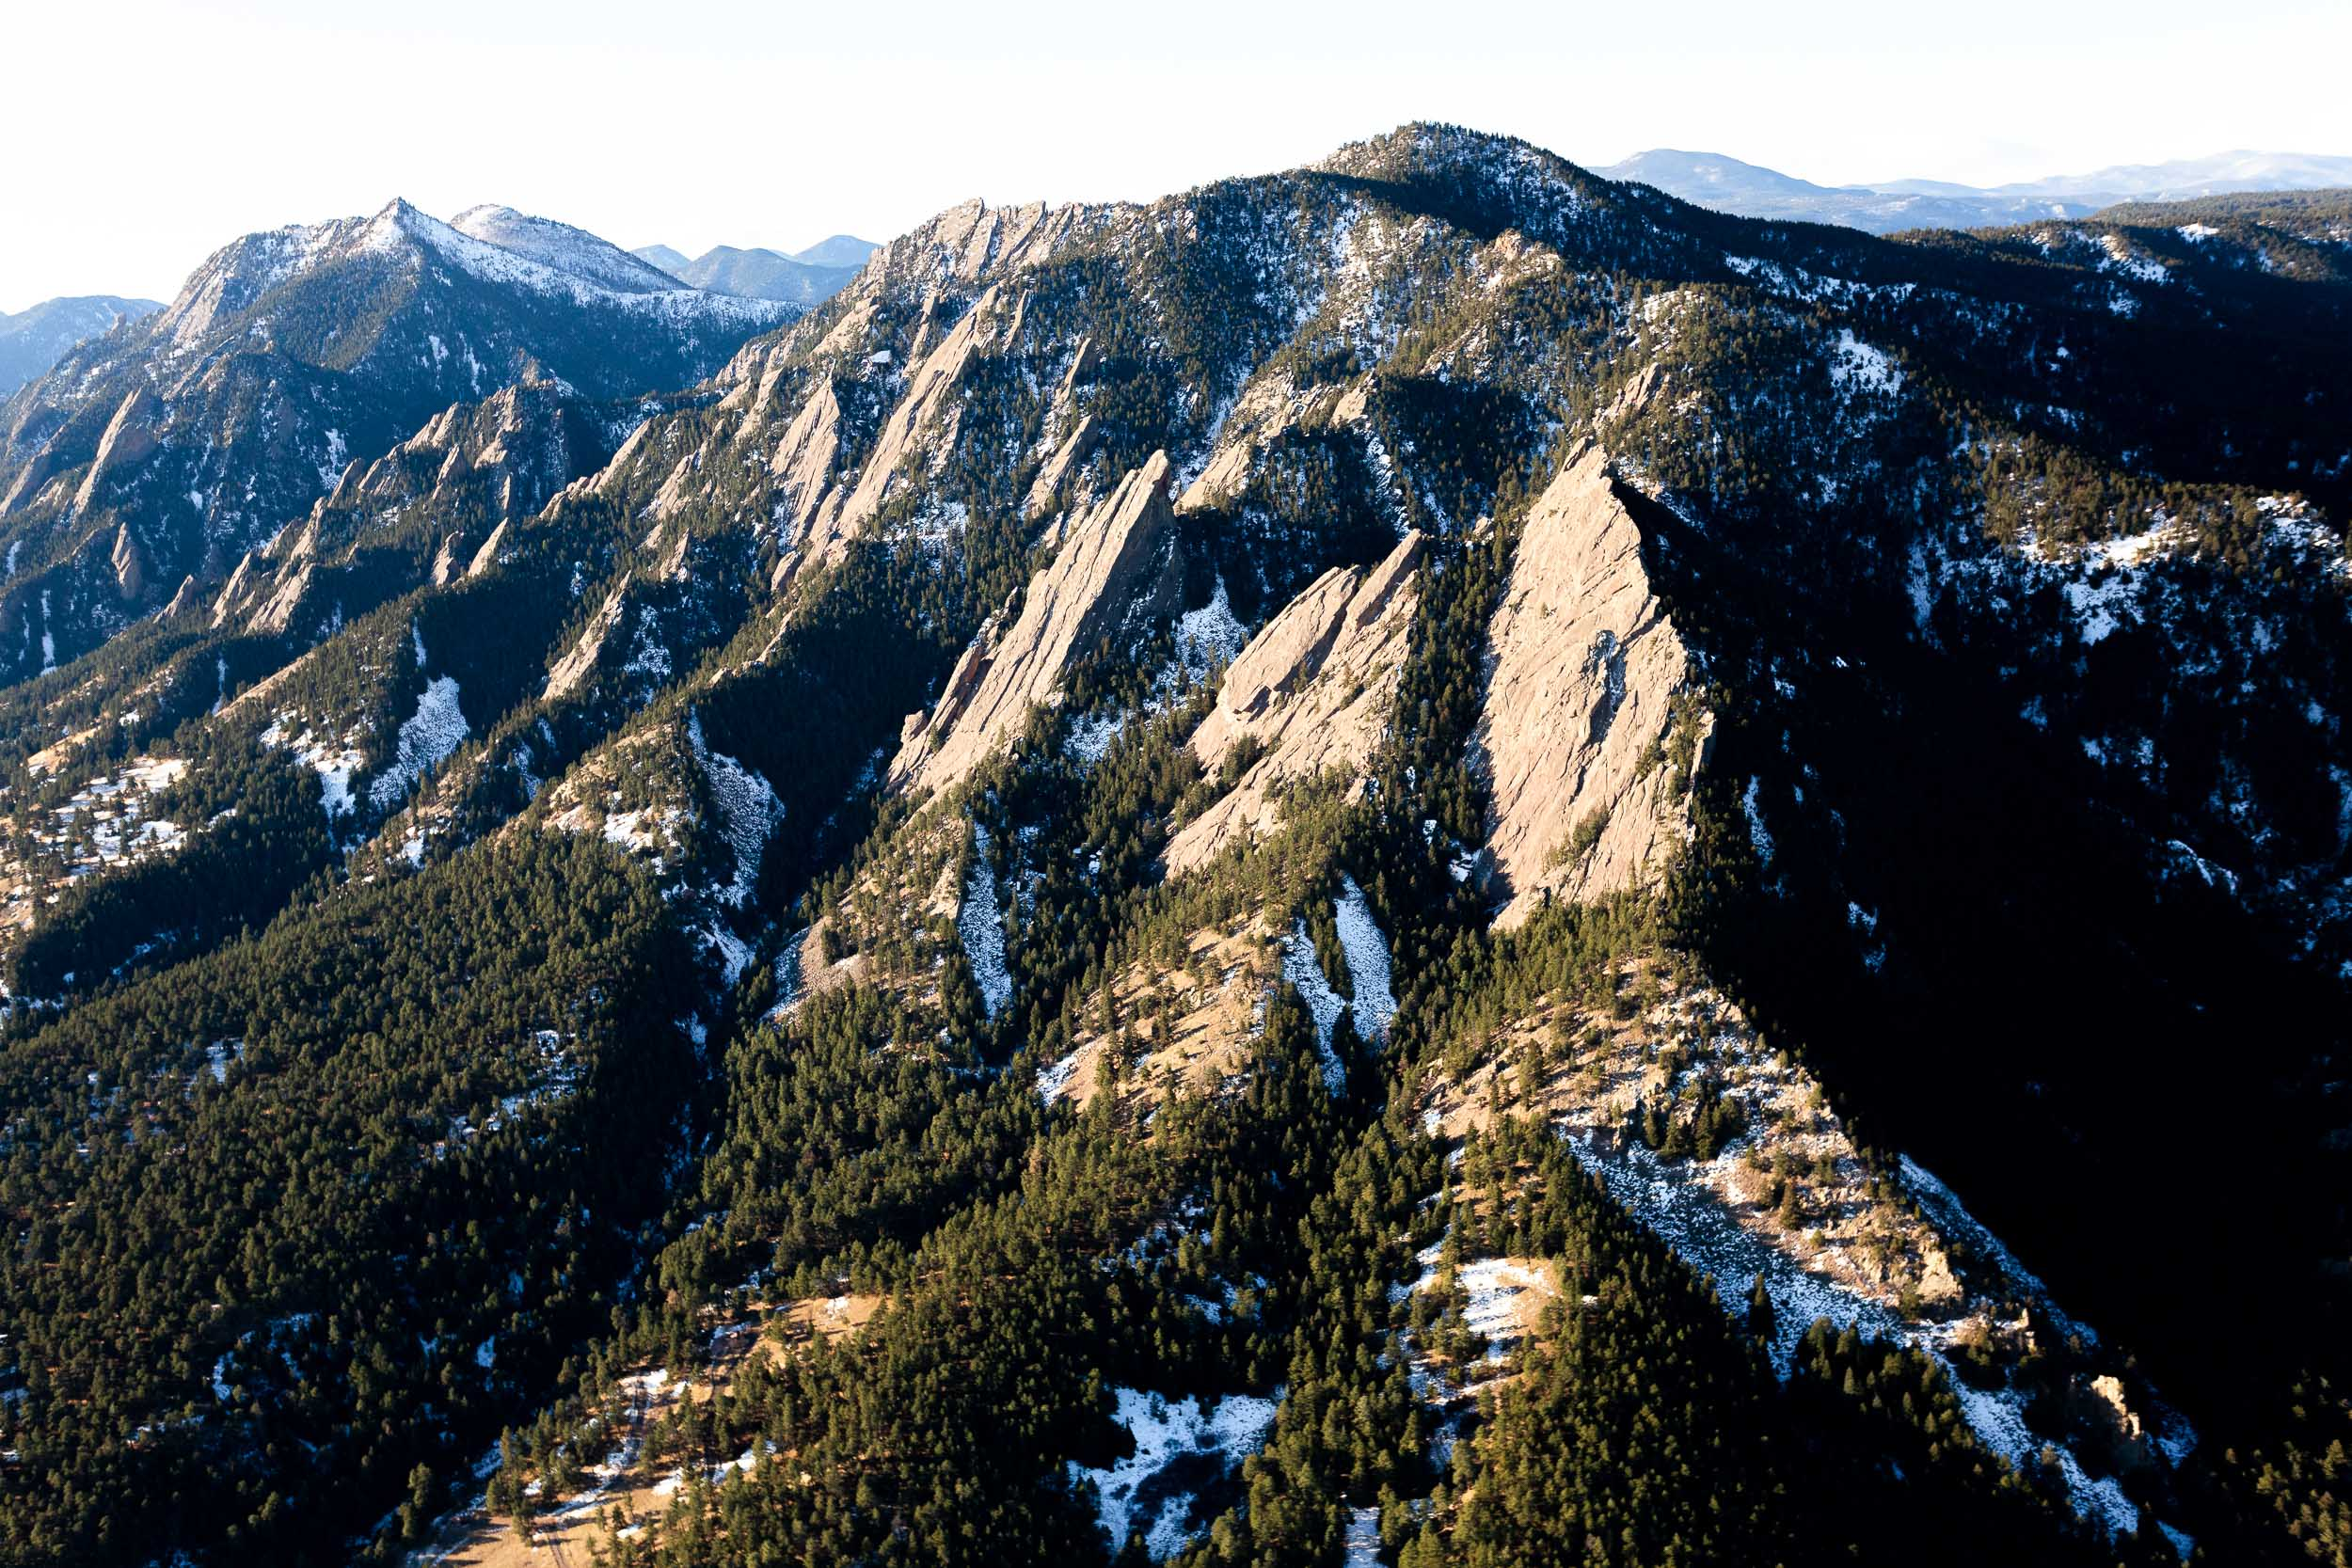 An aerial photo of the Flatirons in Boulder, Colorado in the early morning hours just after sunrise on a November winter morning with some light snow cover.